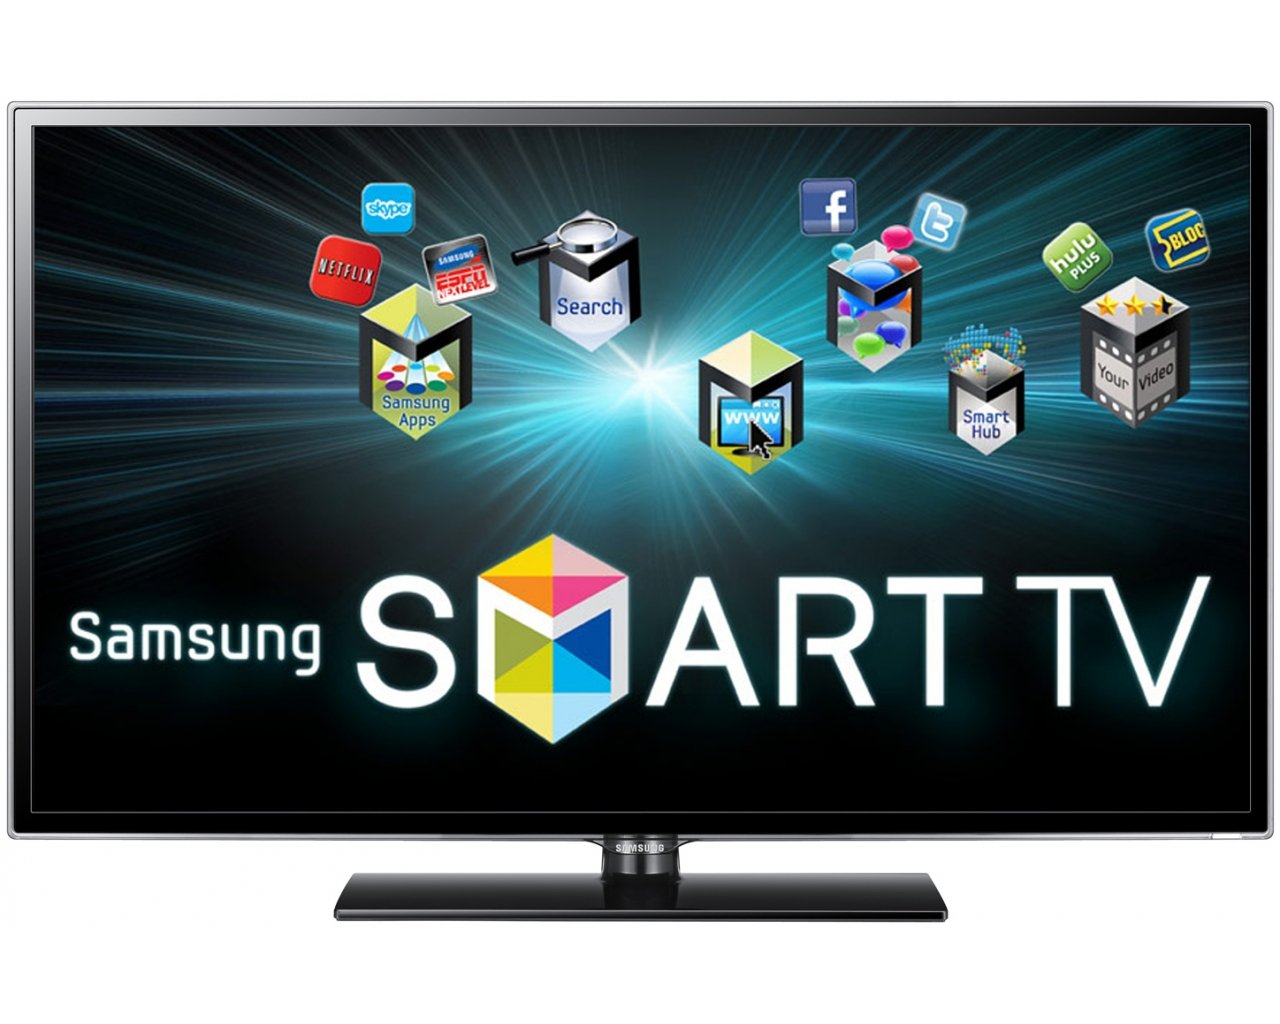 samsung 40 inch smart tv. samsung ue40es5500 40-inch 1080p full hd smart led tv with freeview (discontinued by manufacturer): amazon.co.uk: 40 inch tv